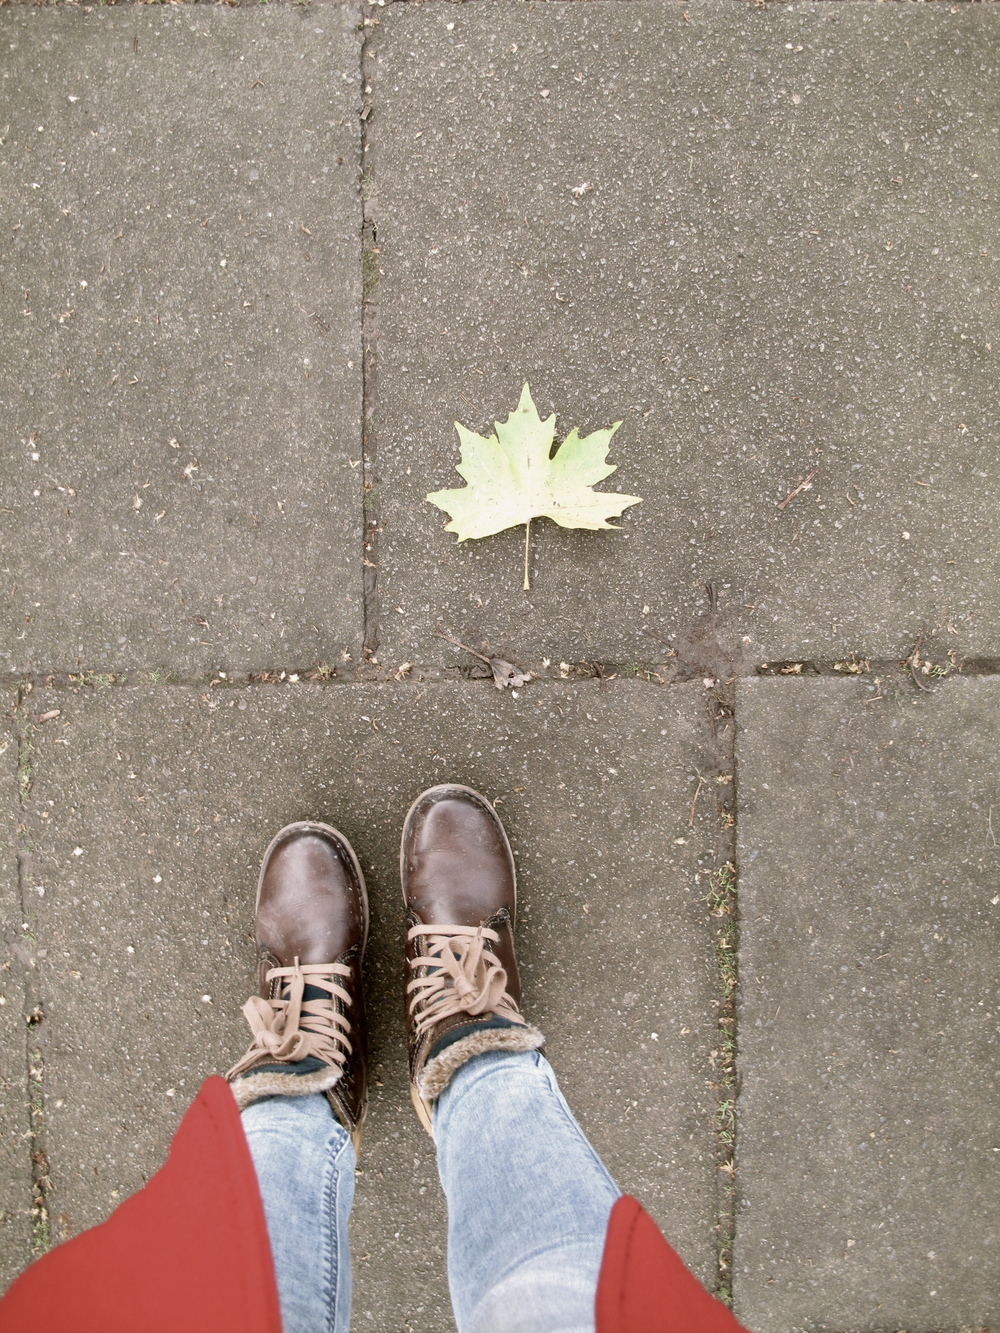 Autumn leaf and winter boots on the stone path.